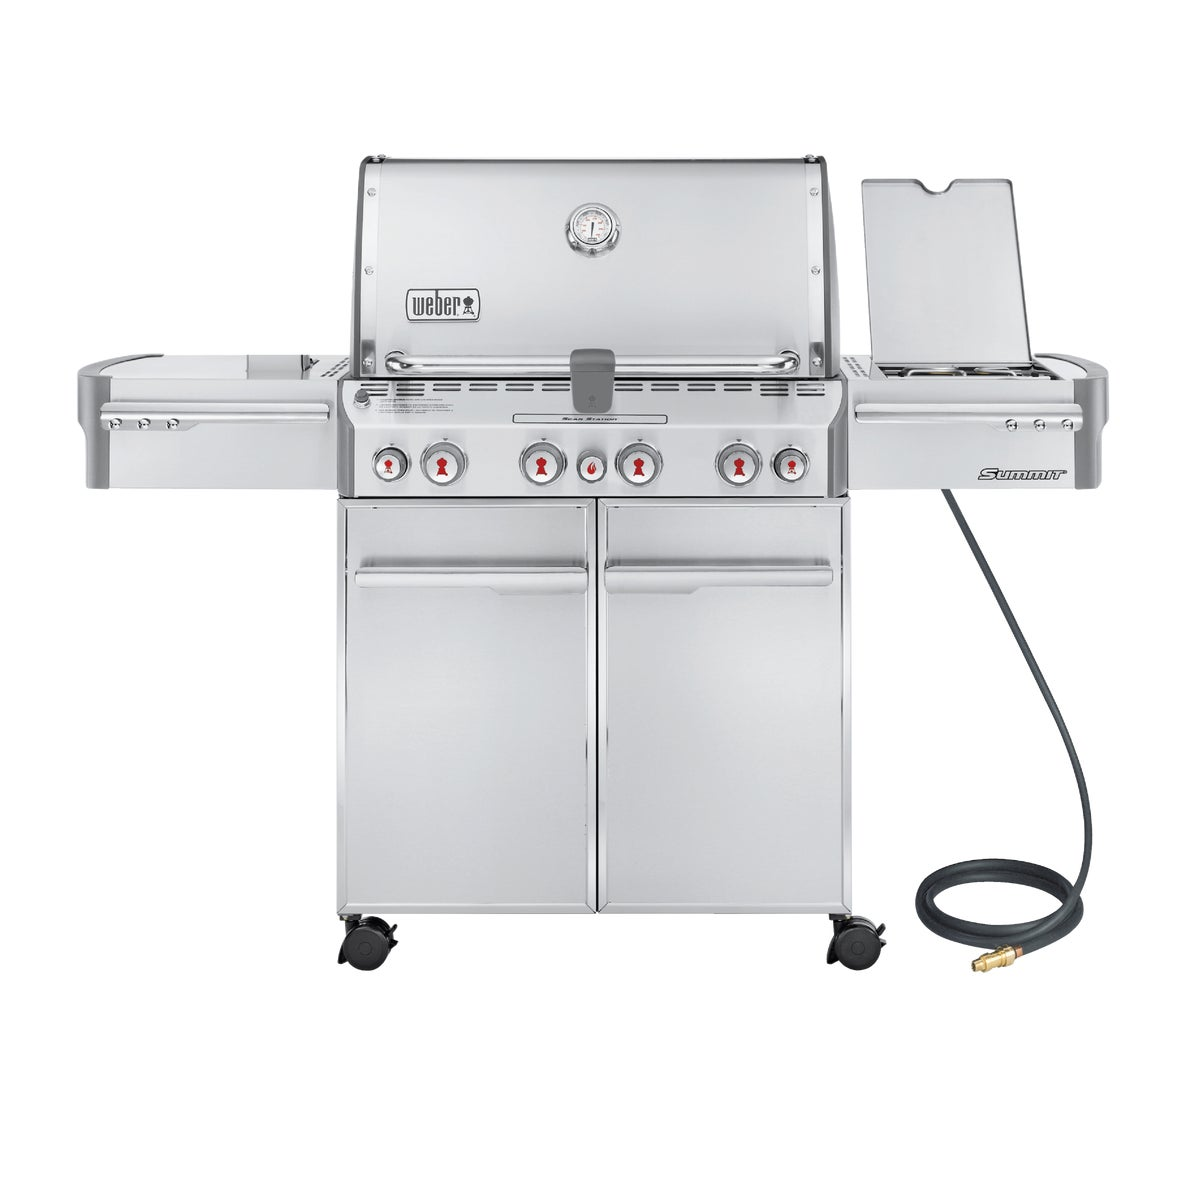 SUMMITS-470NAT GAS GRILL - 7270001 by Weber